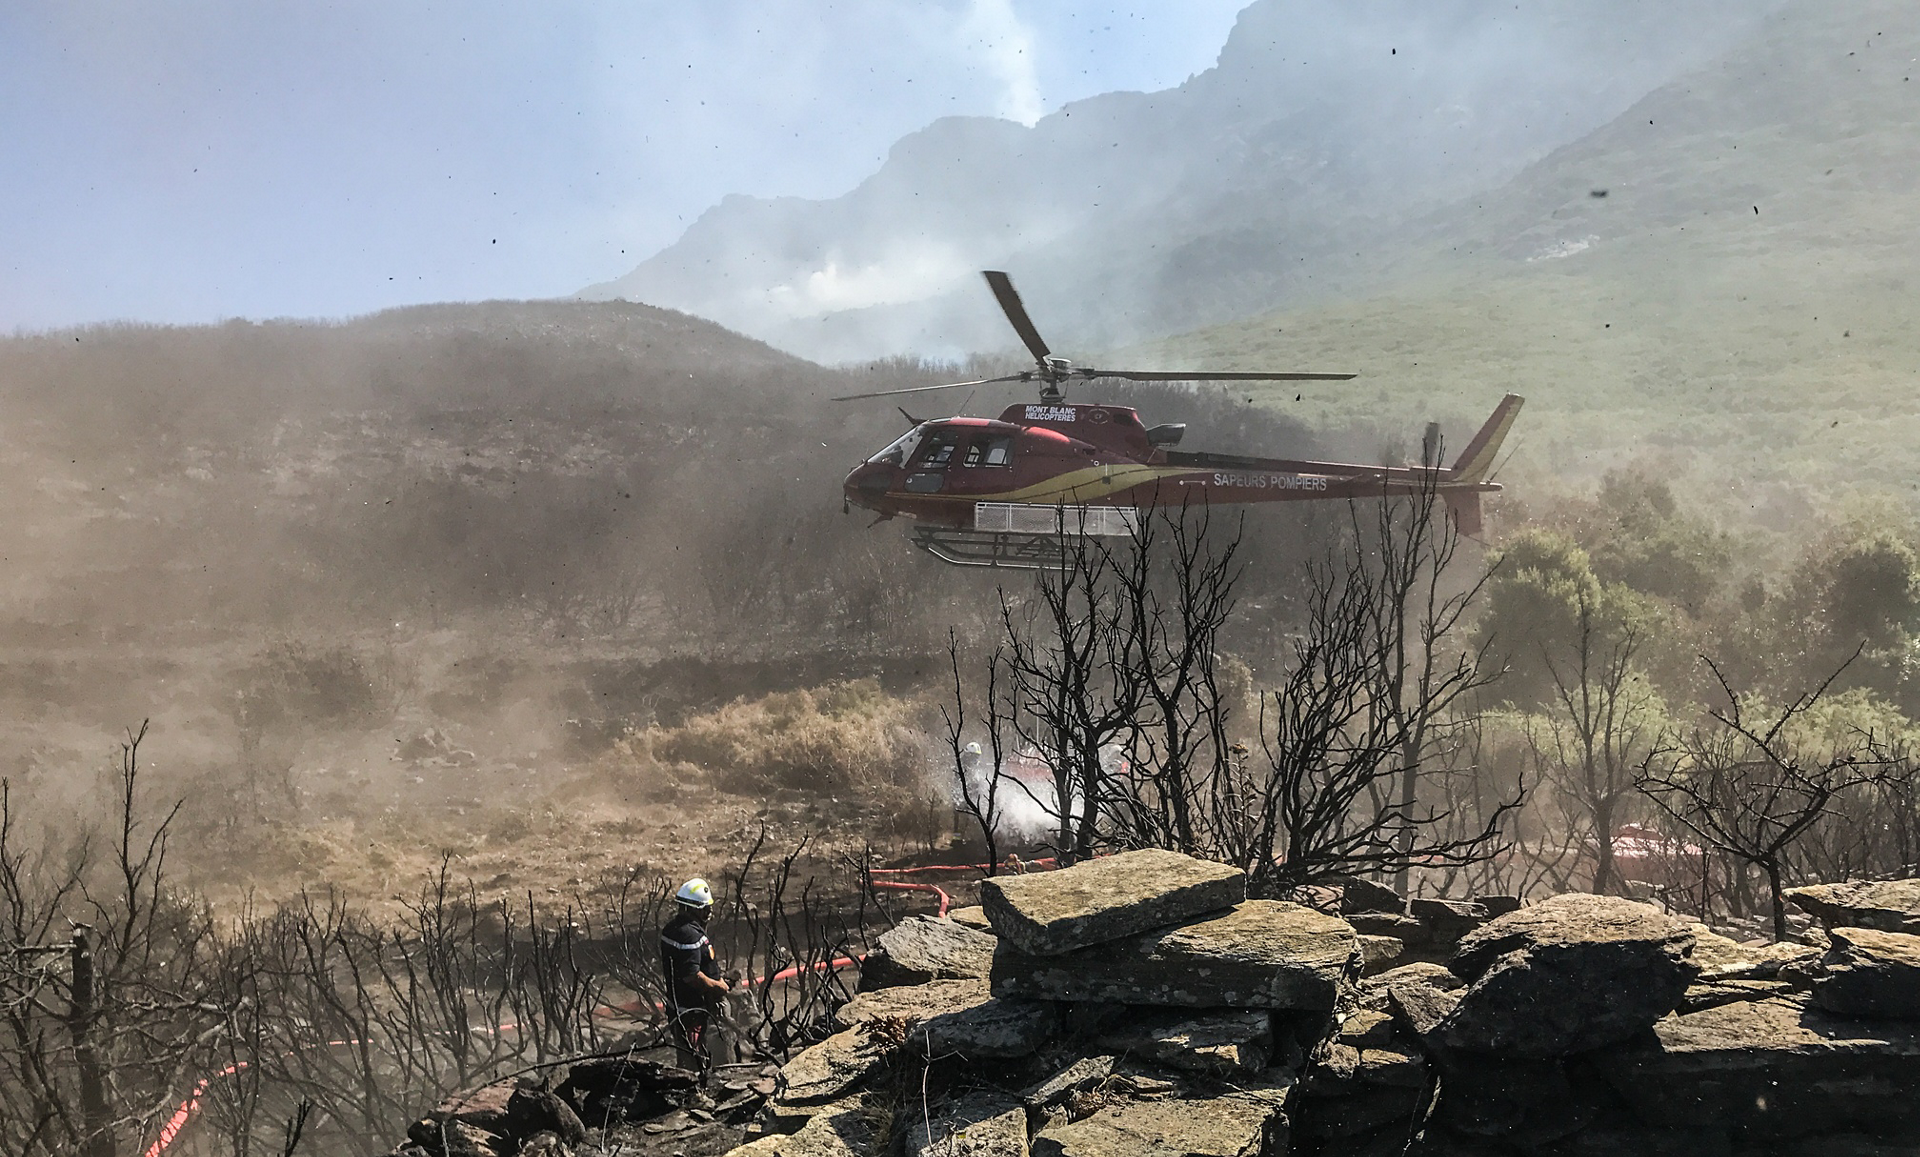 A Mont Blanc Helicoptères-operated Airbus rotorcraft supports firefighting efforts.